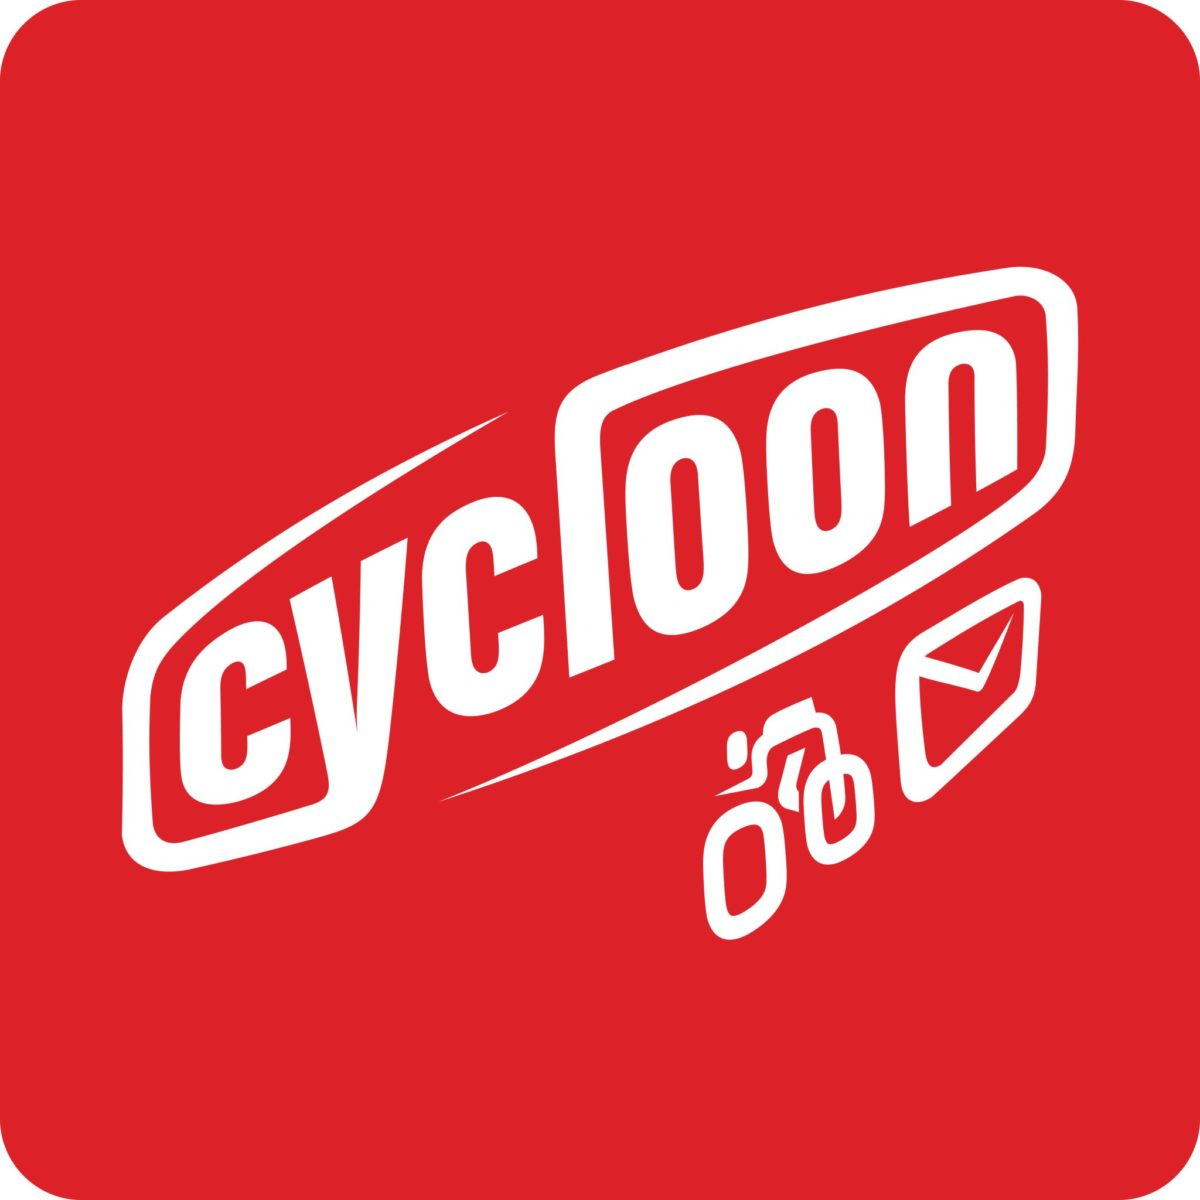 Cycloon logo vierkant JPG